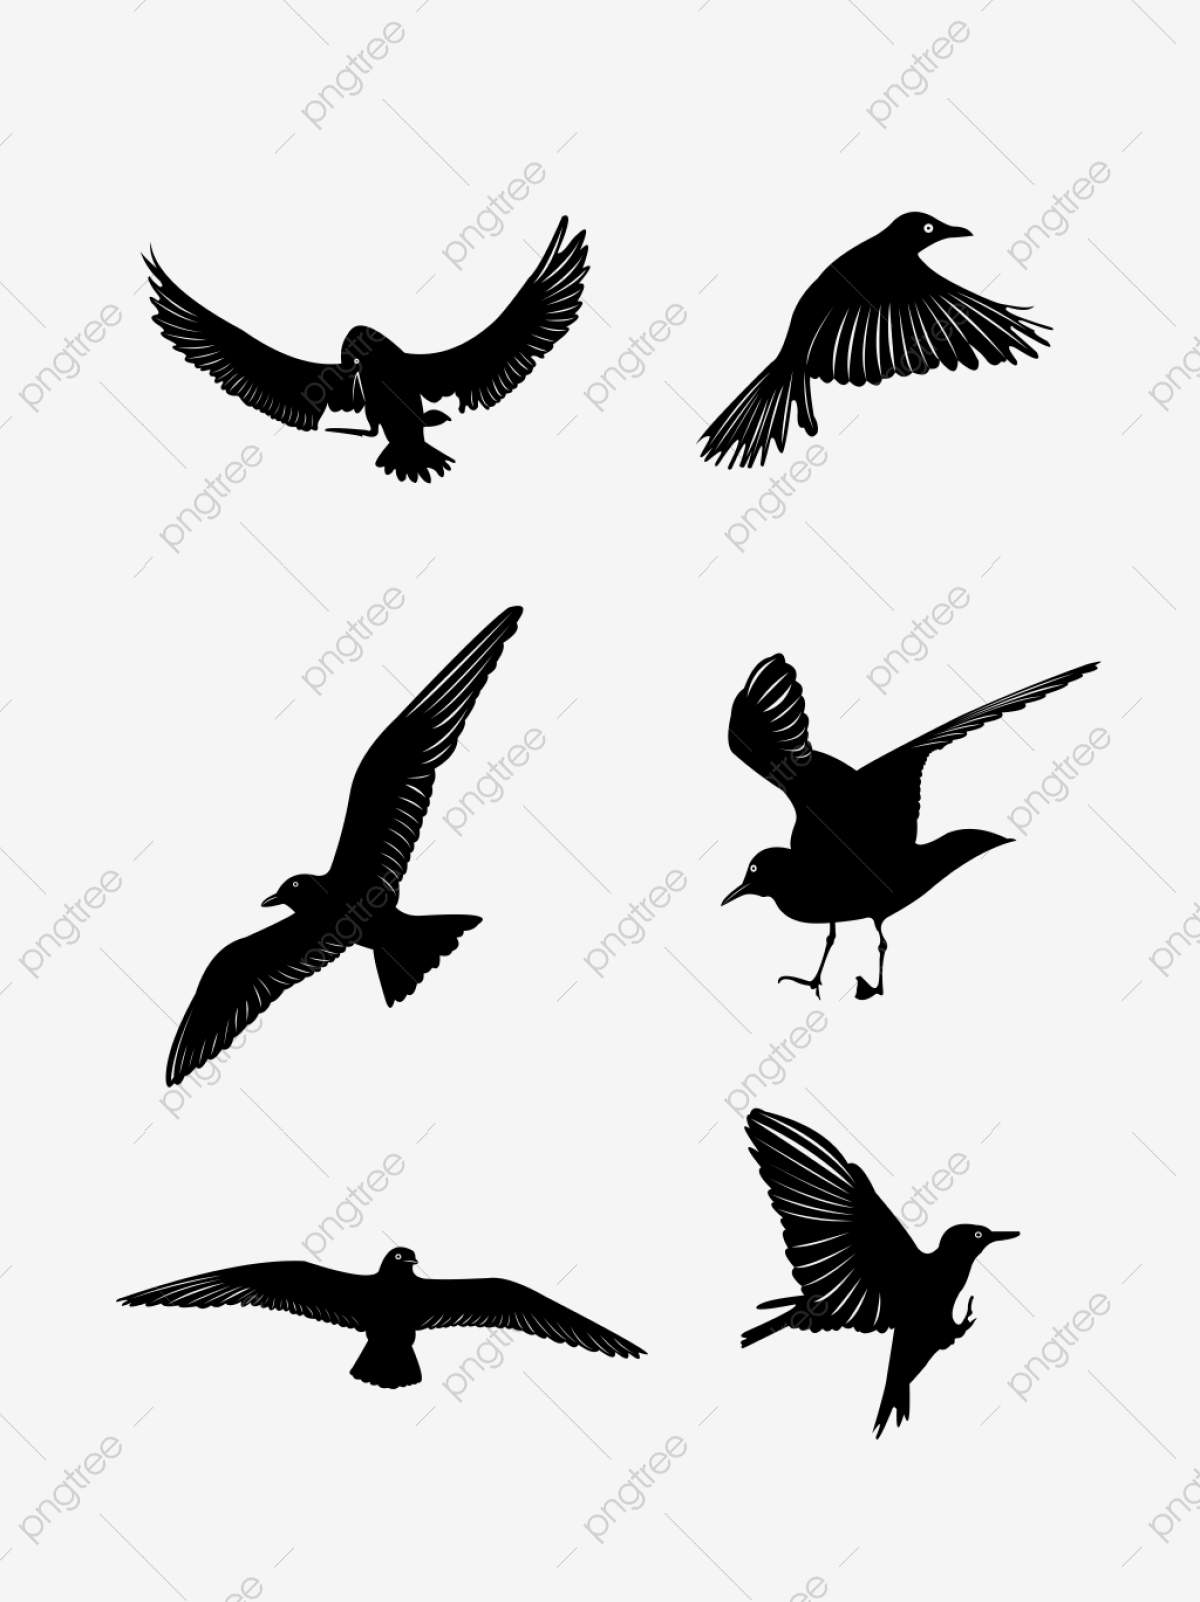 46 Free Vector Flying Birds Silhouettes Flying Flying Bird Bird Png Transparent Image And Clipart For Free Download